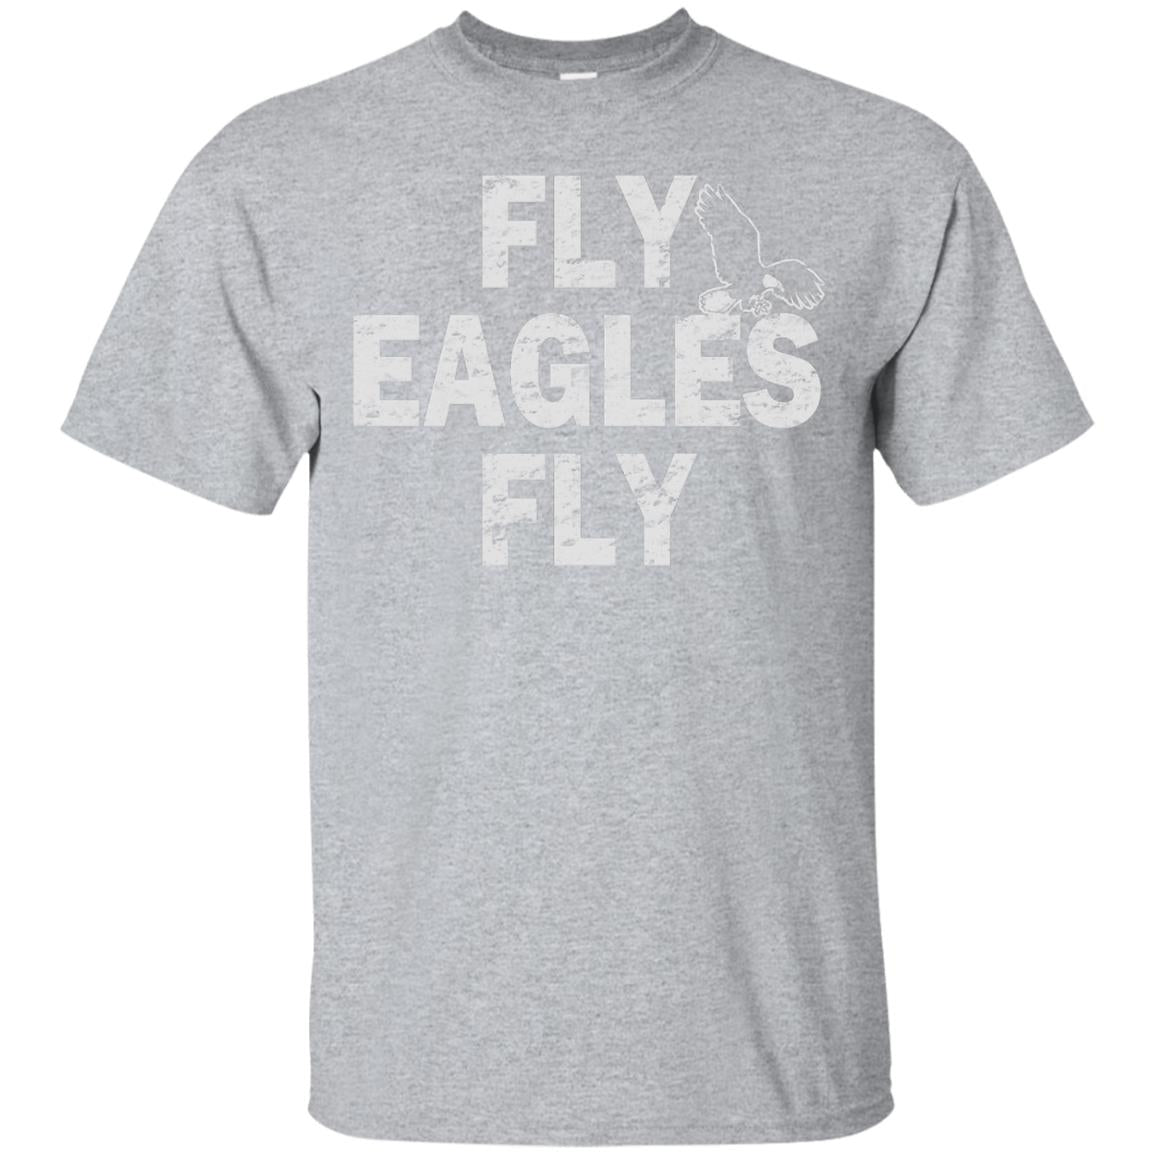 Vintage Fly Eagles Fly Green and White 99promocode